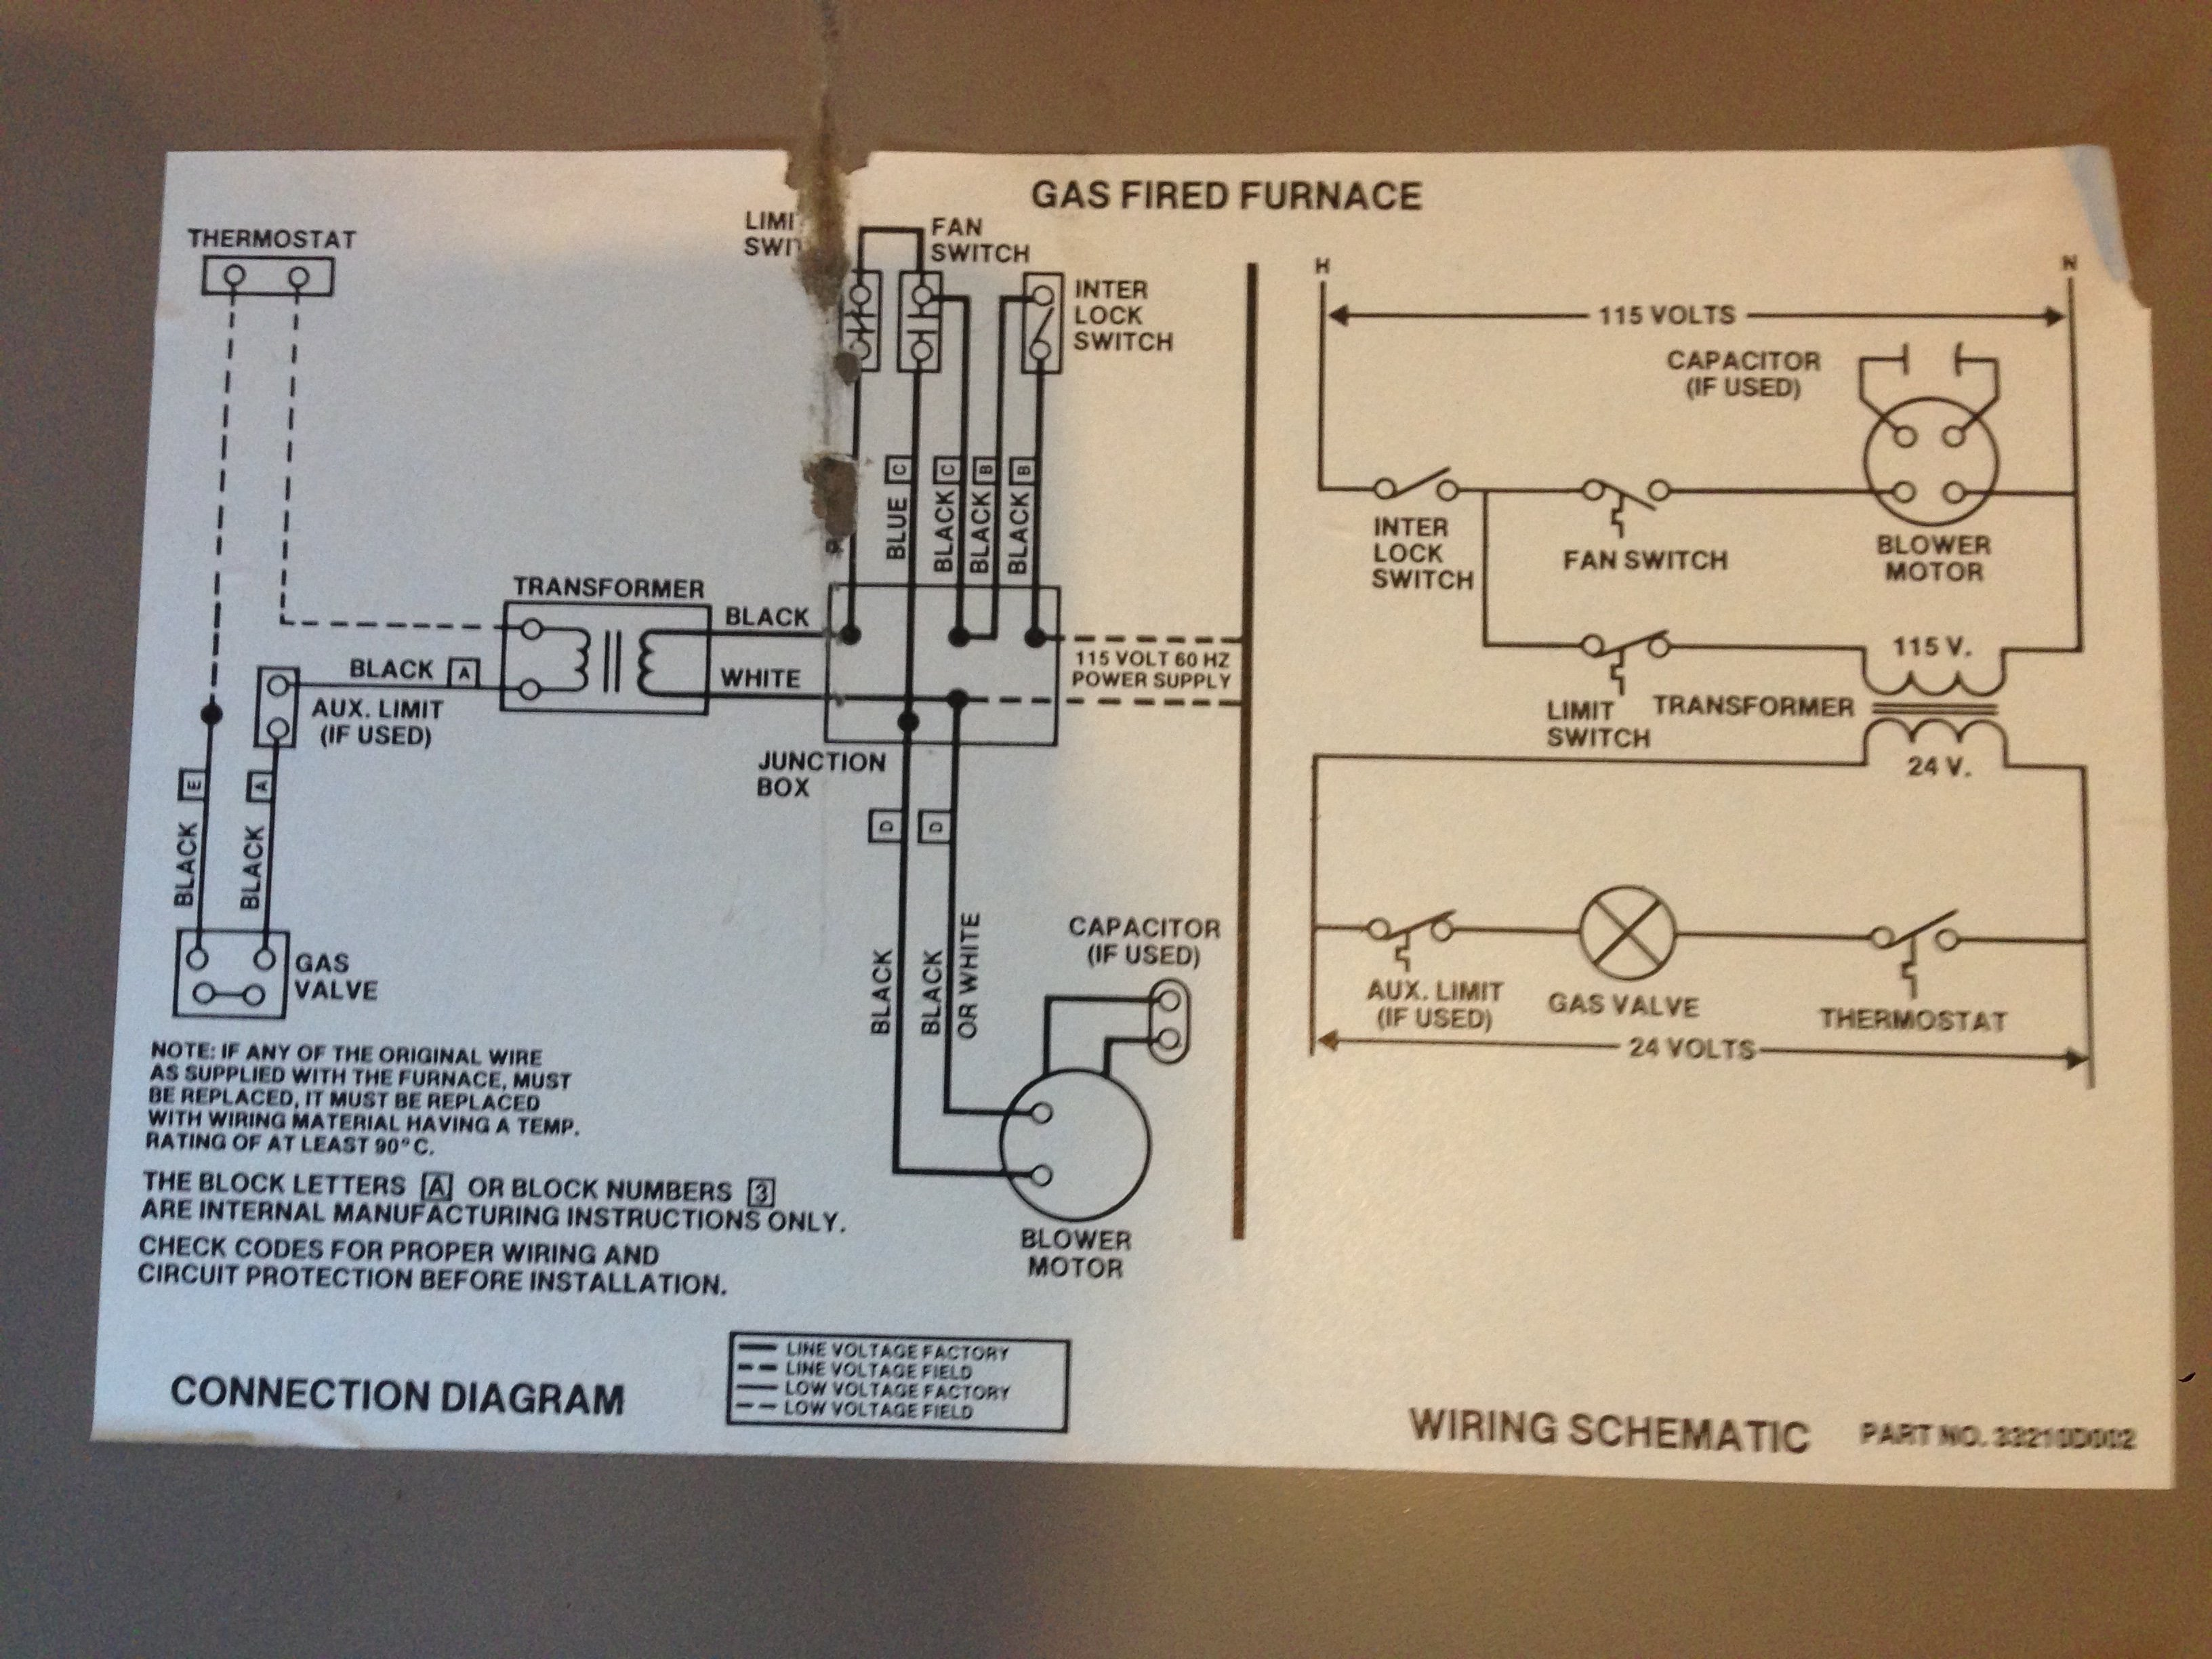 i'm looking for the wiring instructions for a honeywell ... henry old furnace wiring diagram old furnace wiring